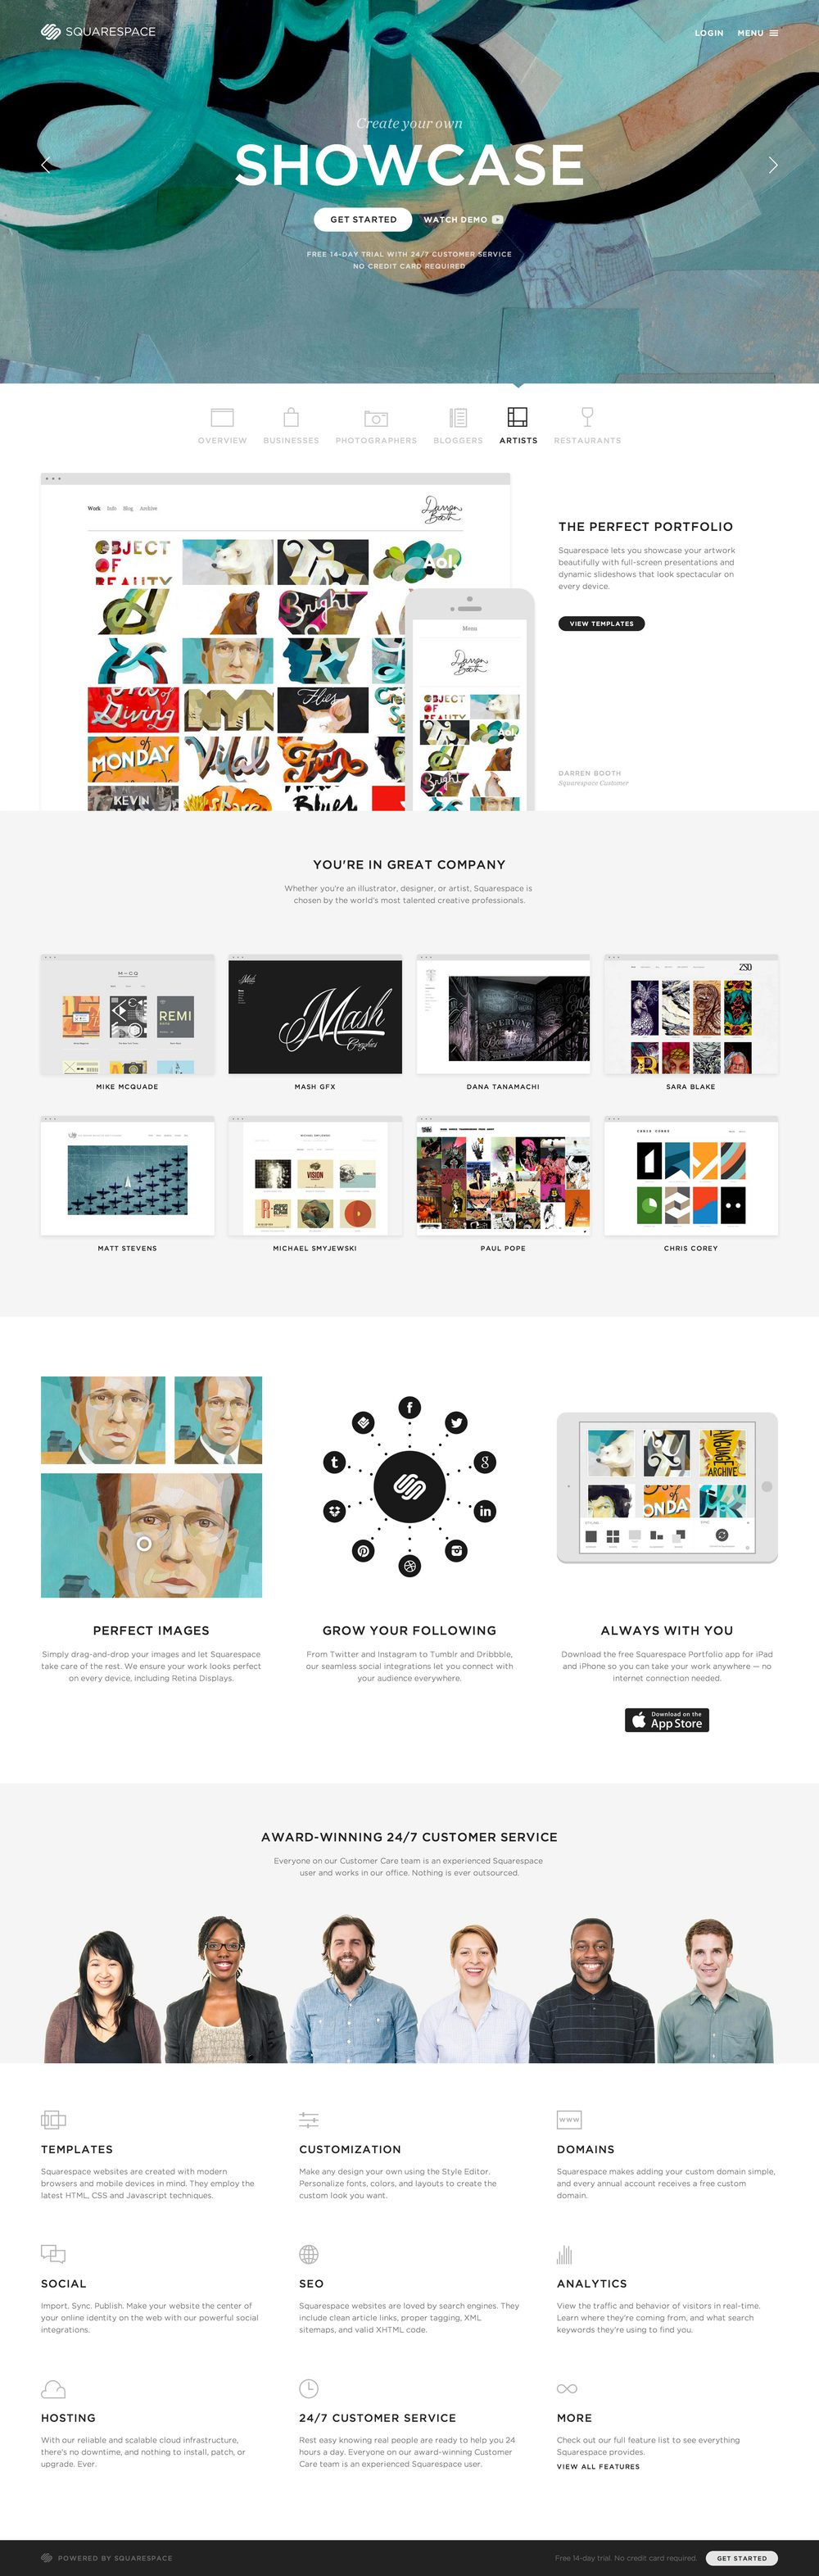 squarespace-tour-full-artists.jpg